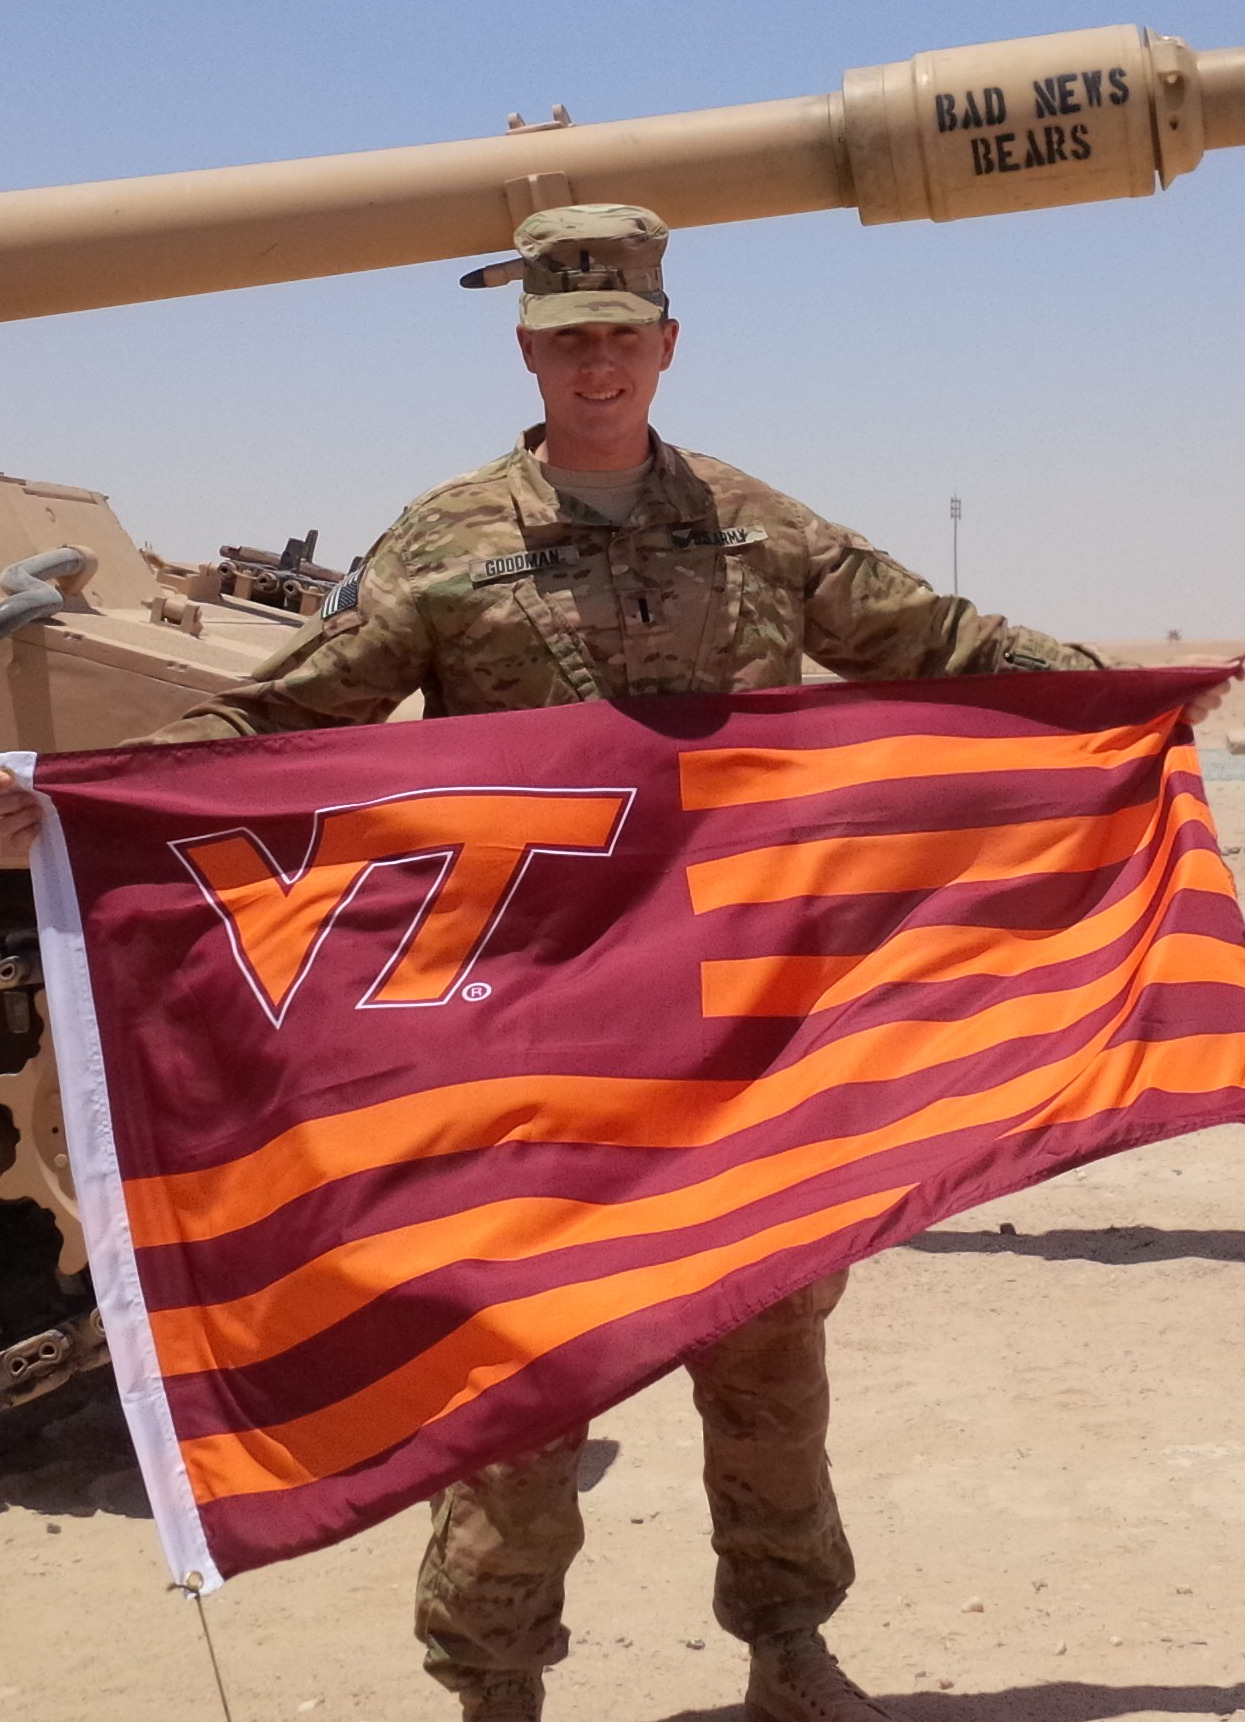 1st Lt. John Goodman, U.S. Army, Virginia Tech Corps of Cadets Class of 2013.